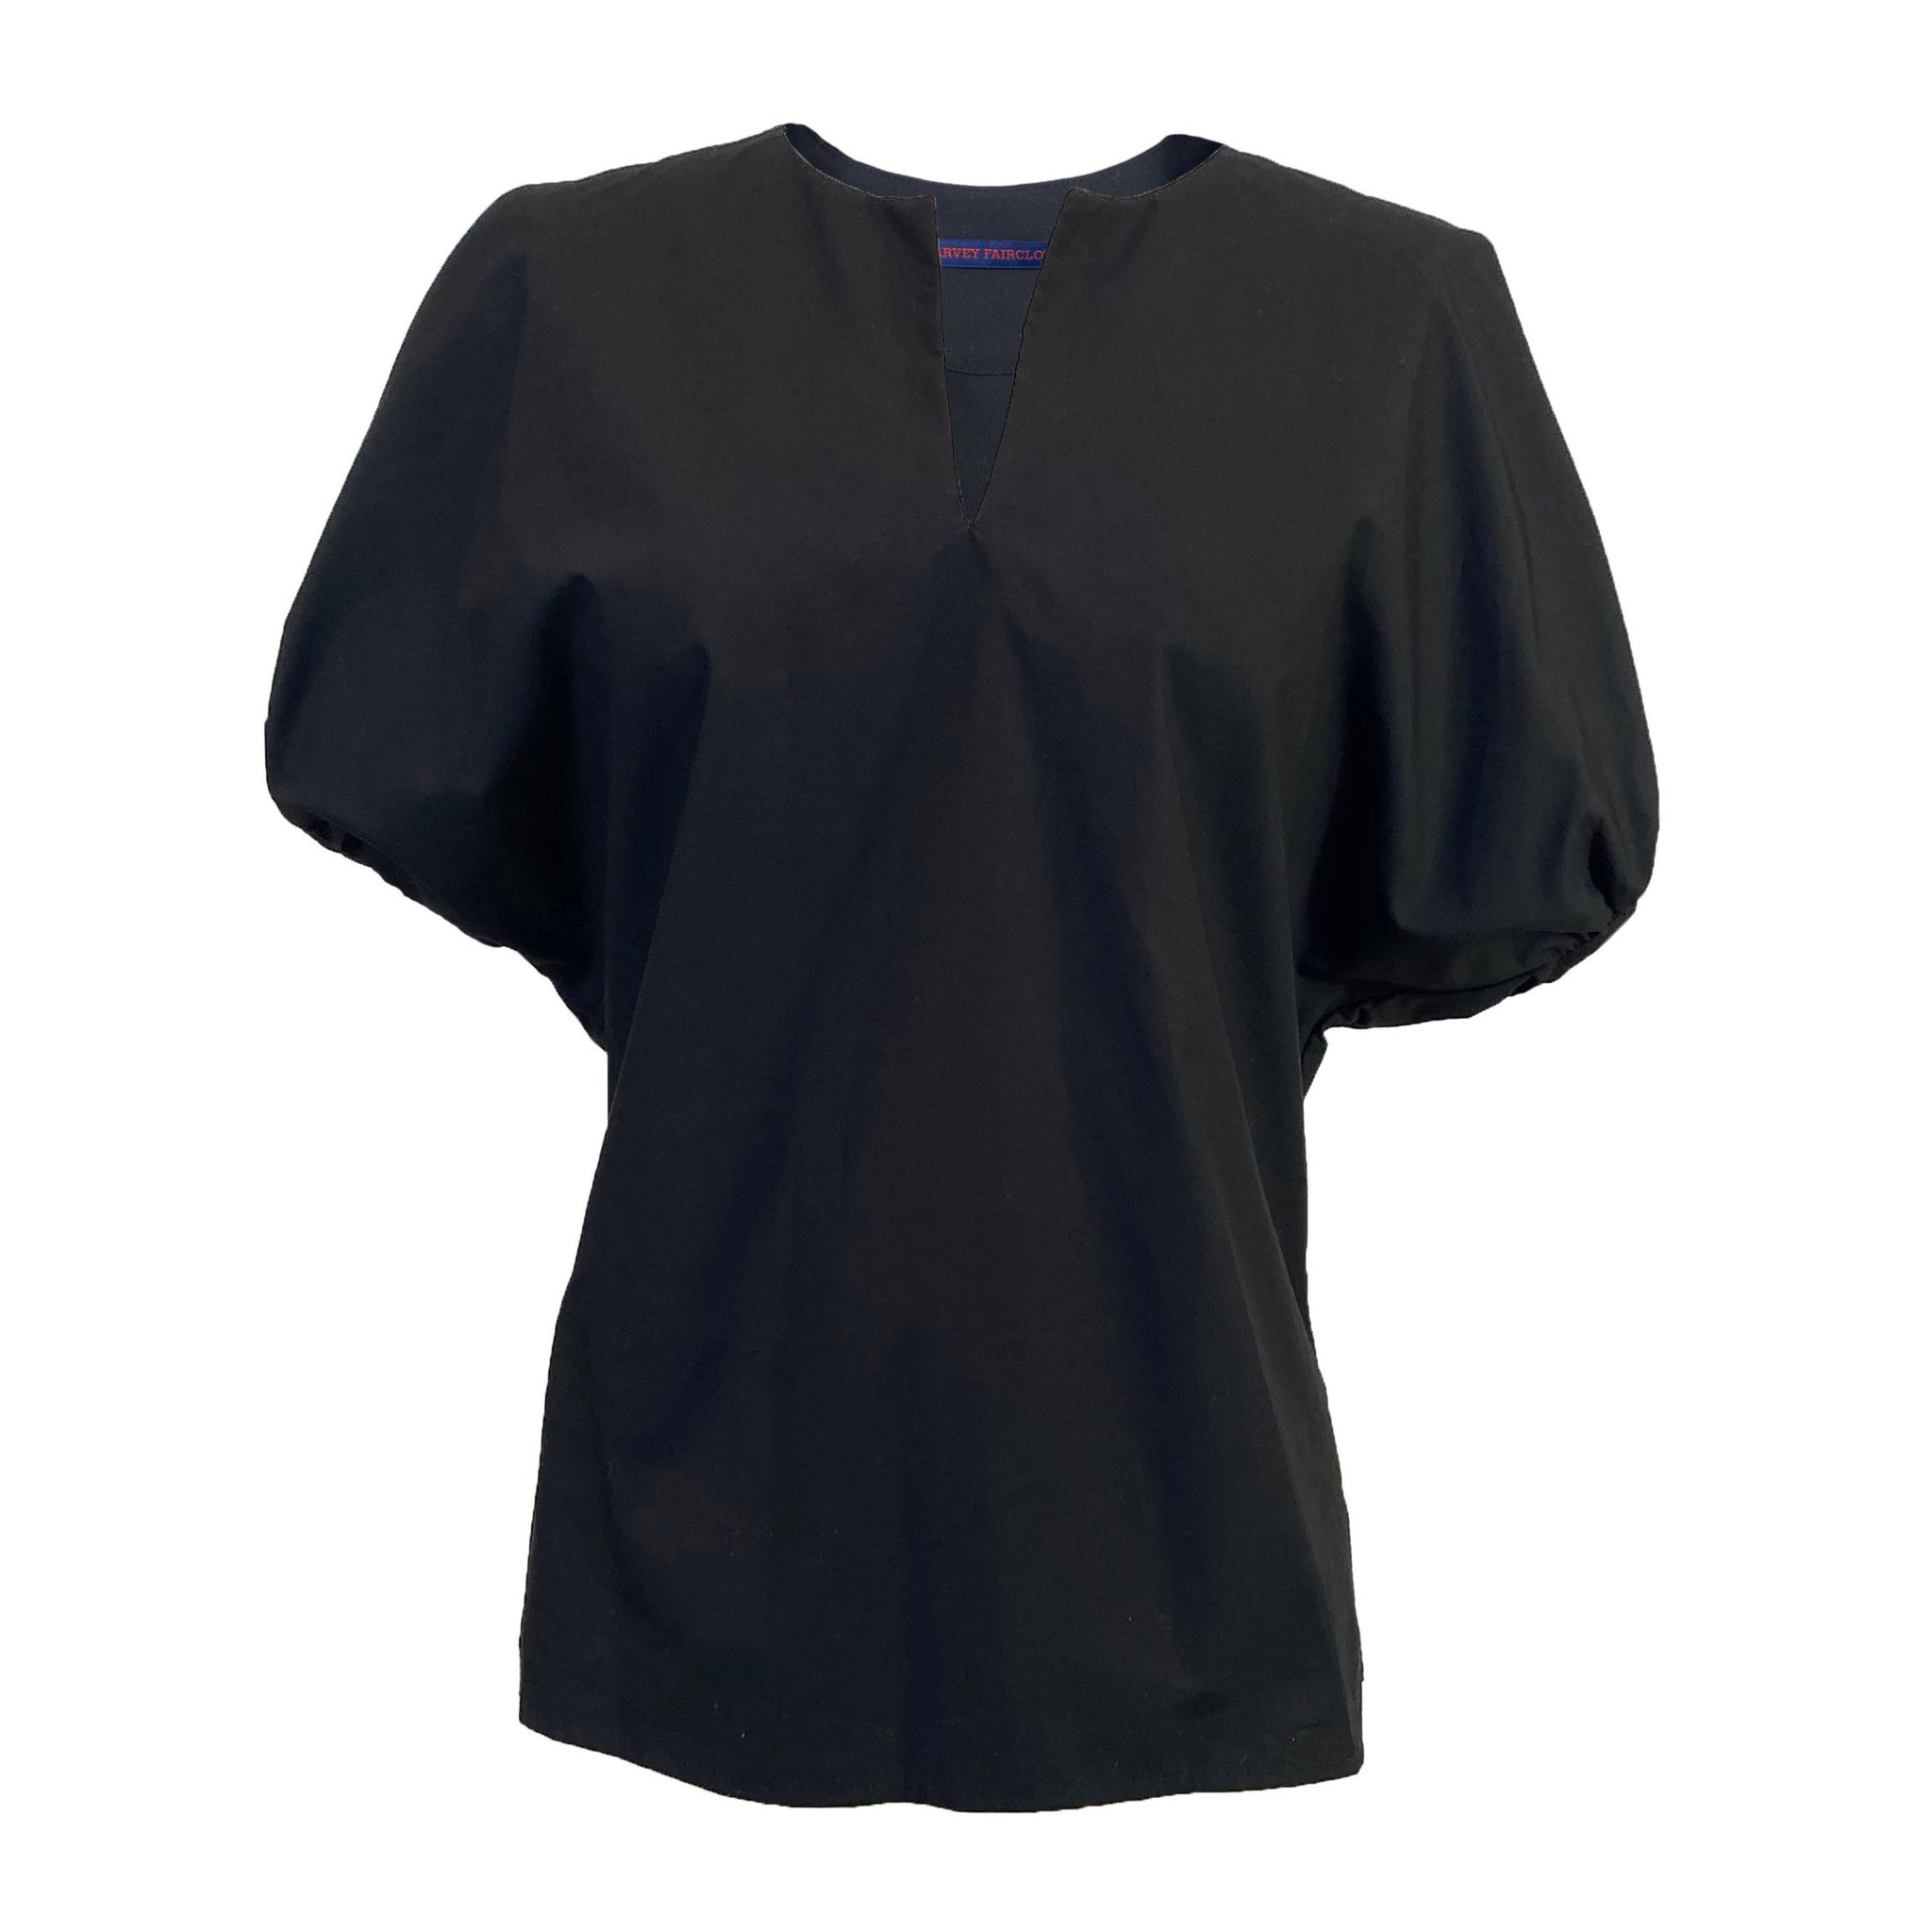 Oversize Puff Sleeve Top in Black